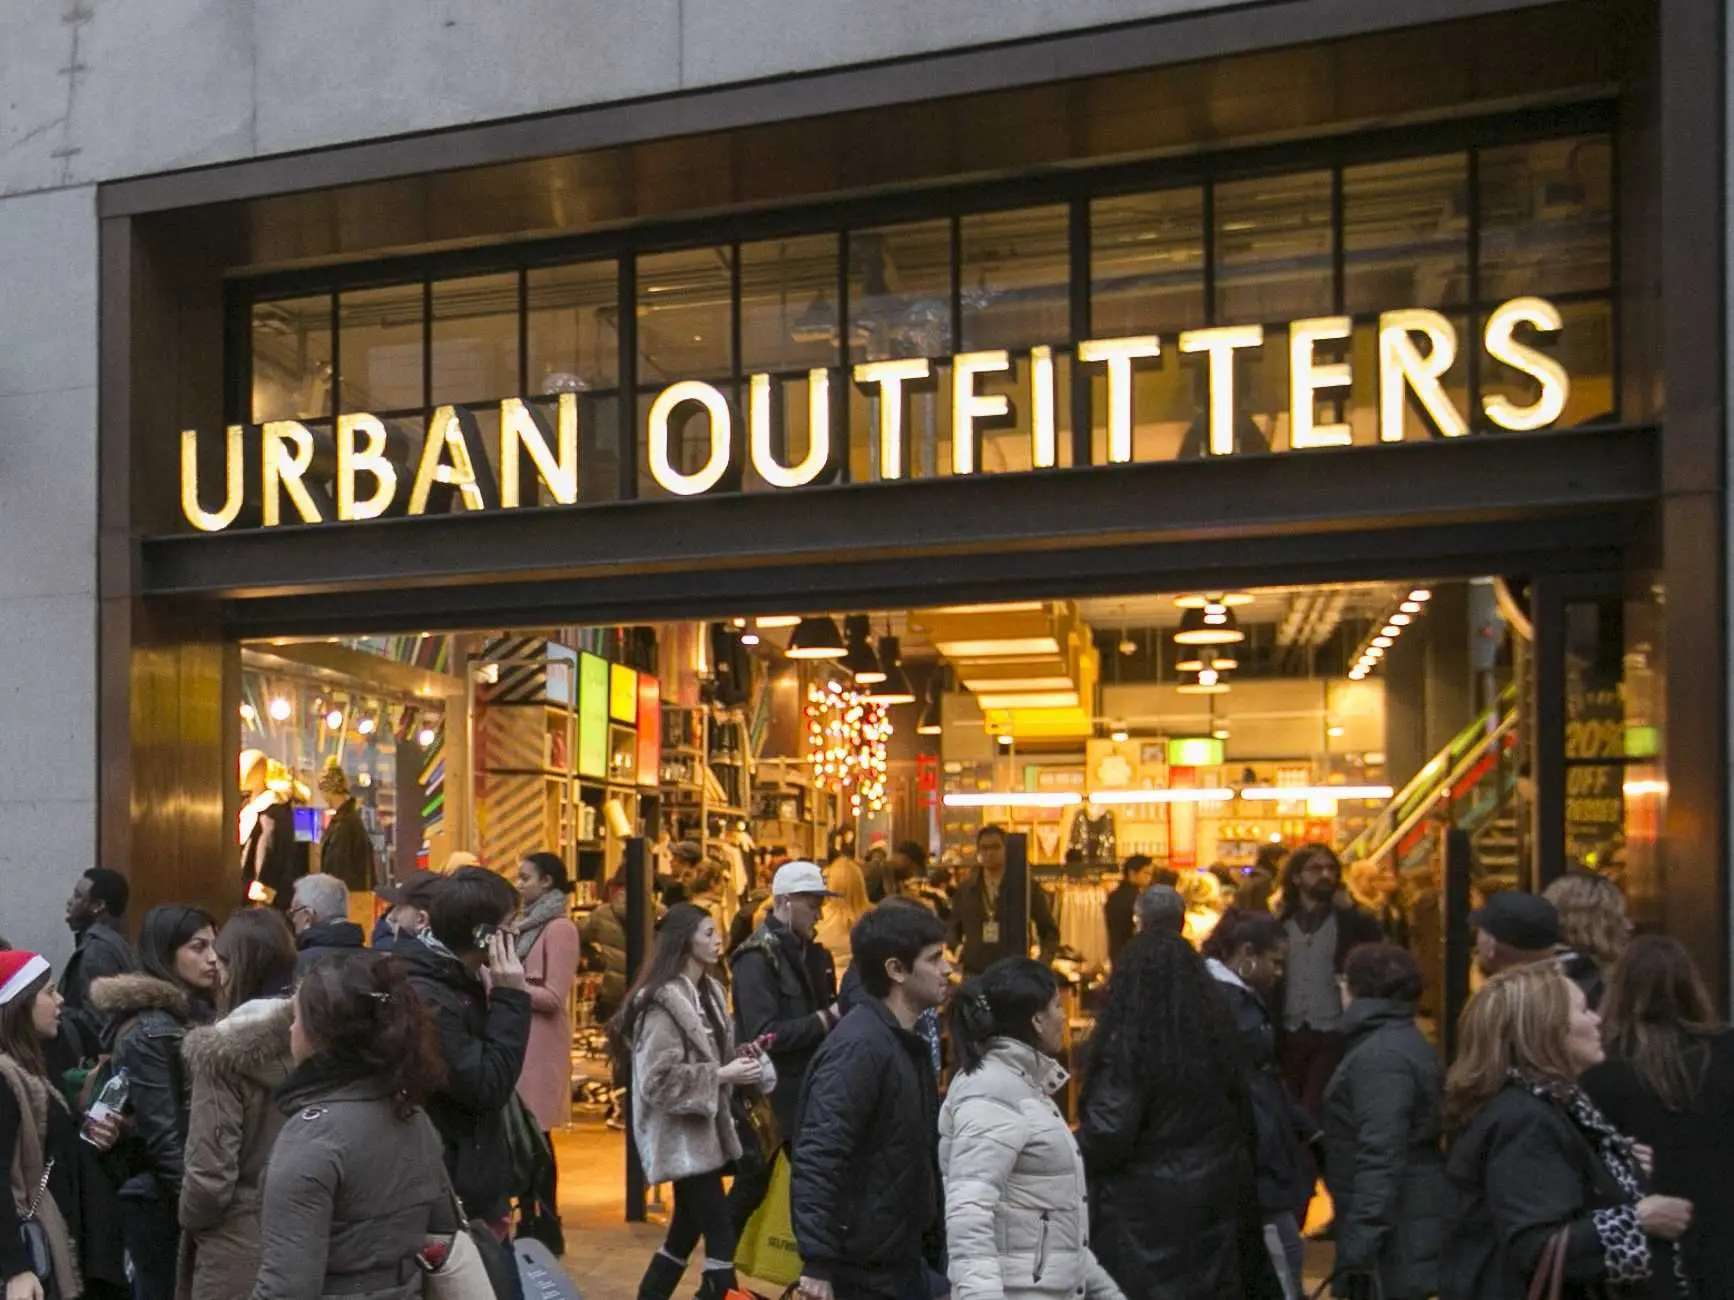 17) Urban Outfitters